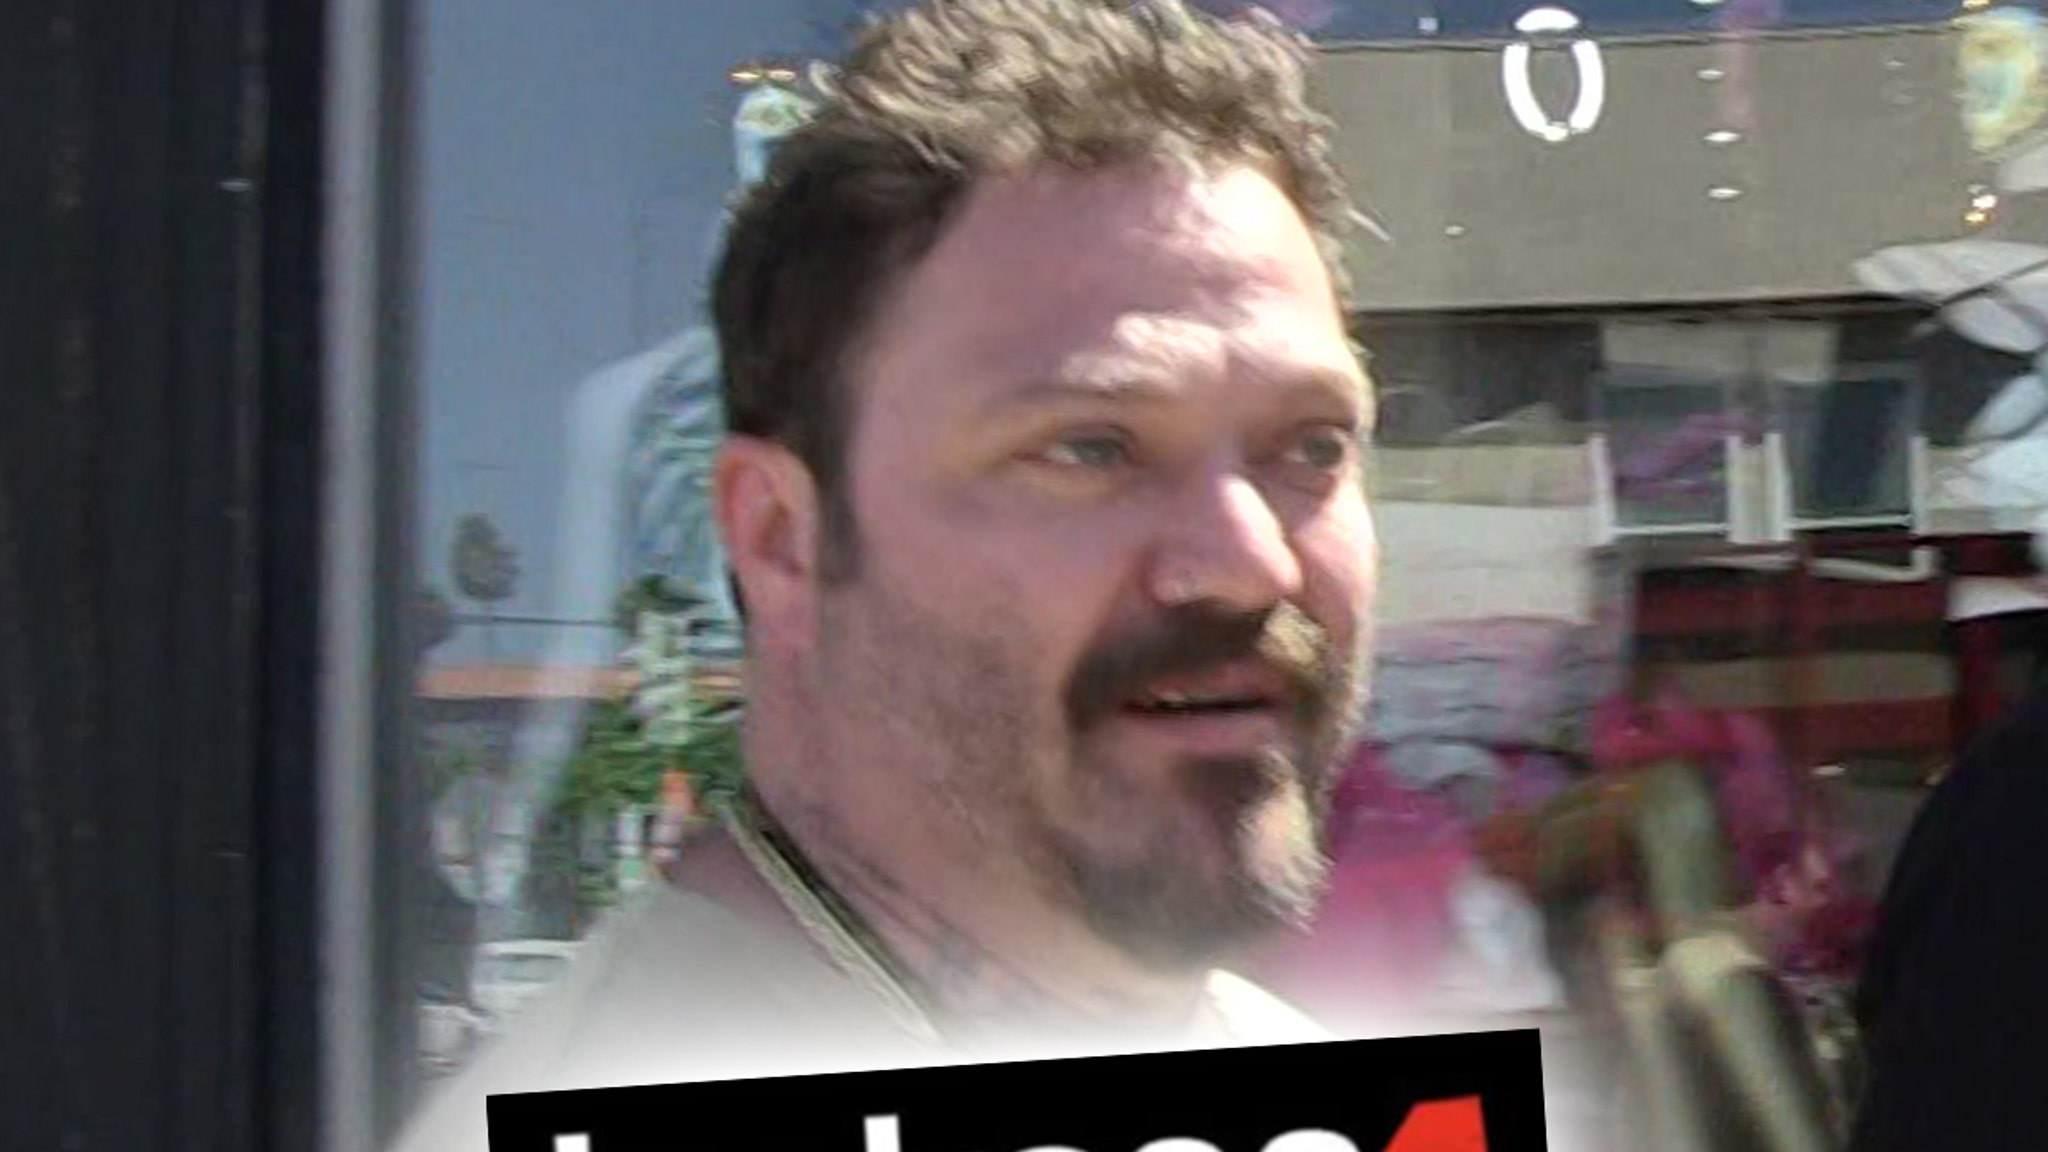 Bam Margera Kicked Off of 'Jackass 4,' Couldn't Abide by Conditions - TMZ